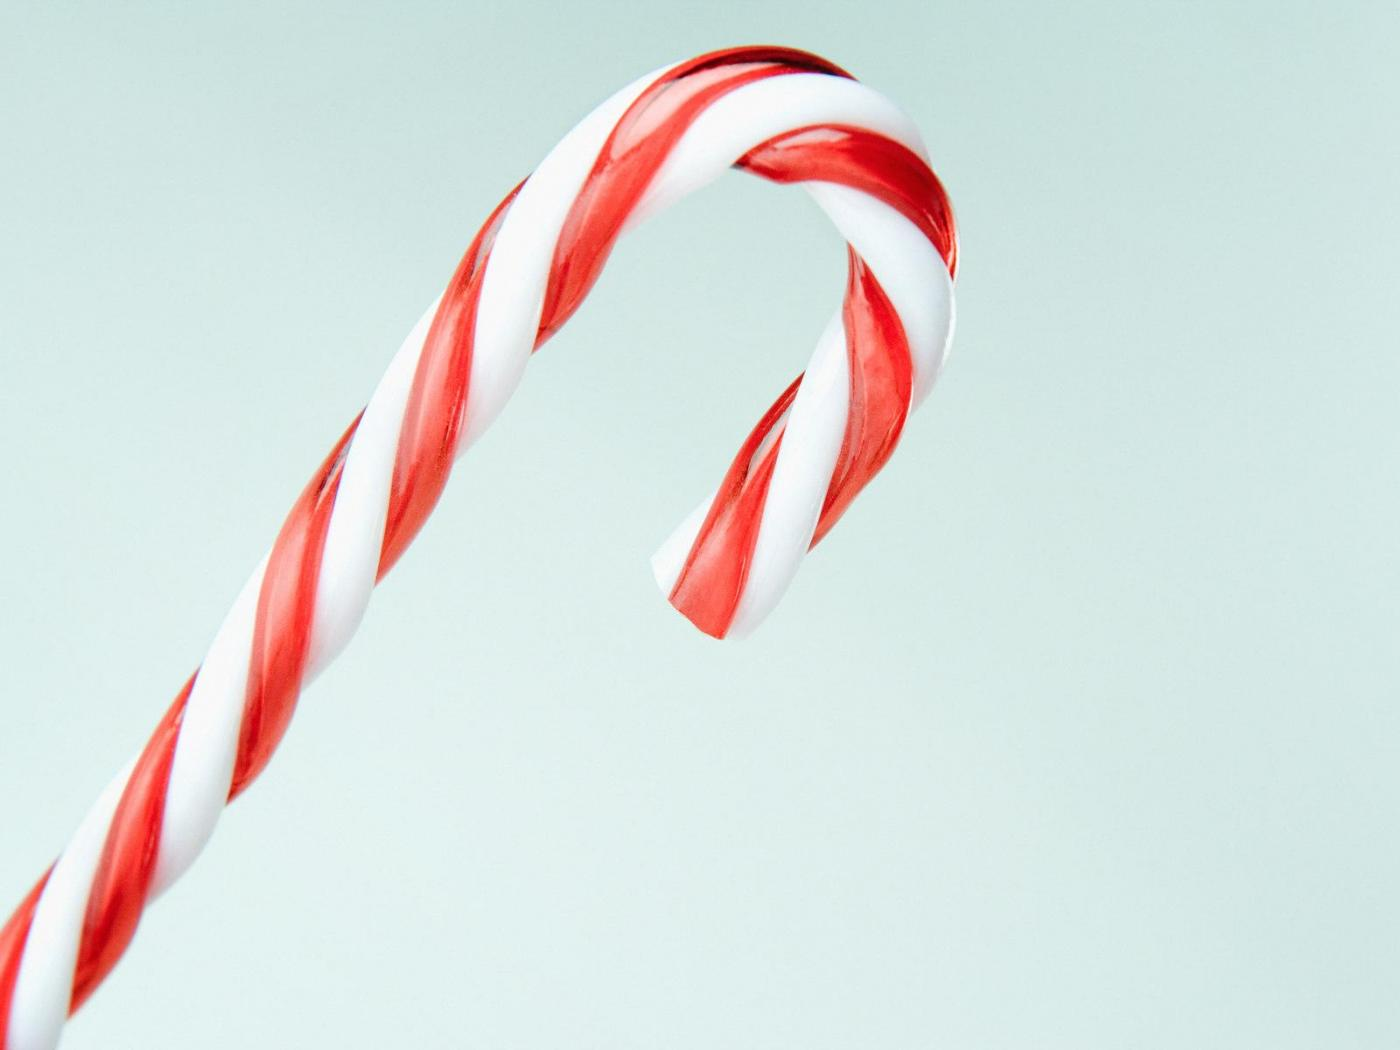 Candy Cane 1400x1050 Wallpapers 1400x1050 Wallpapers 1400x1050